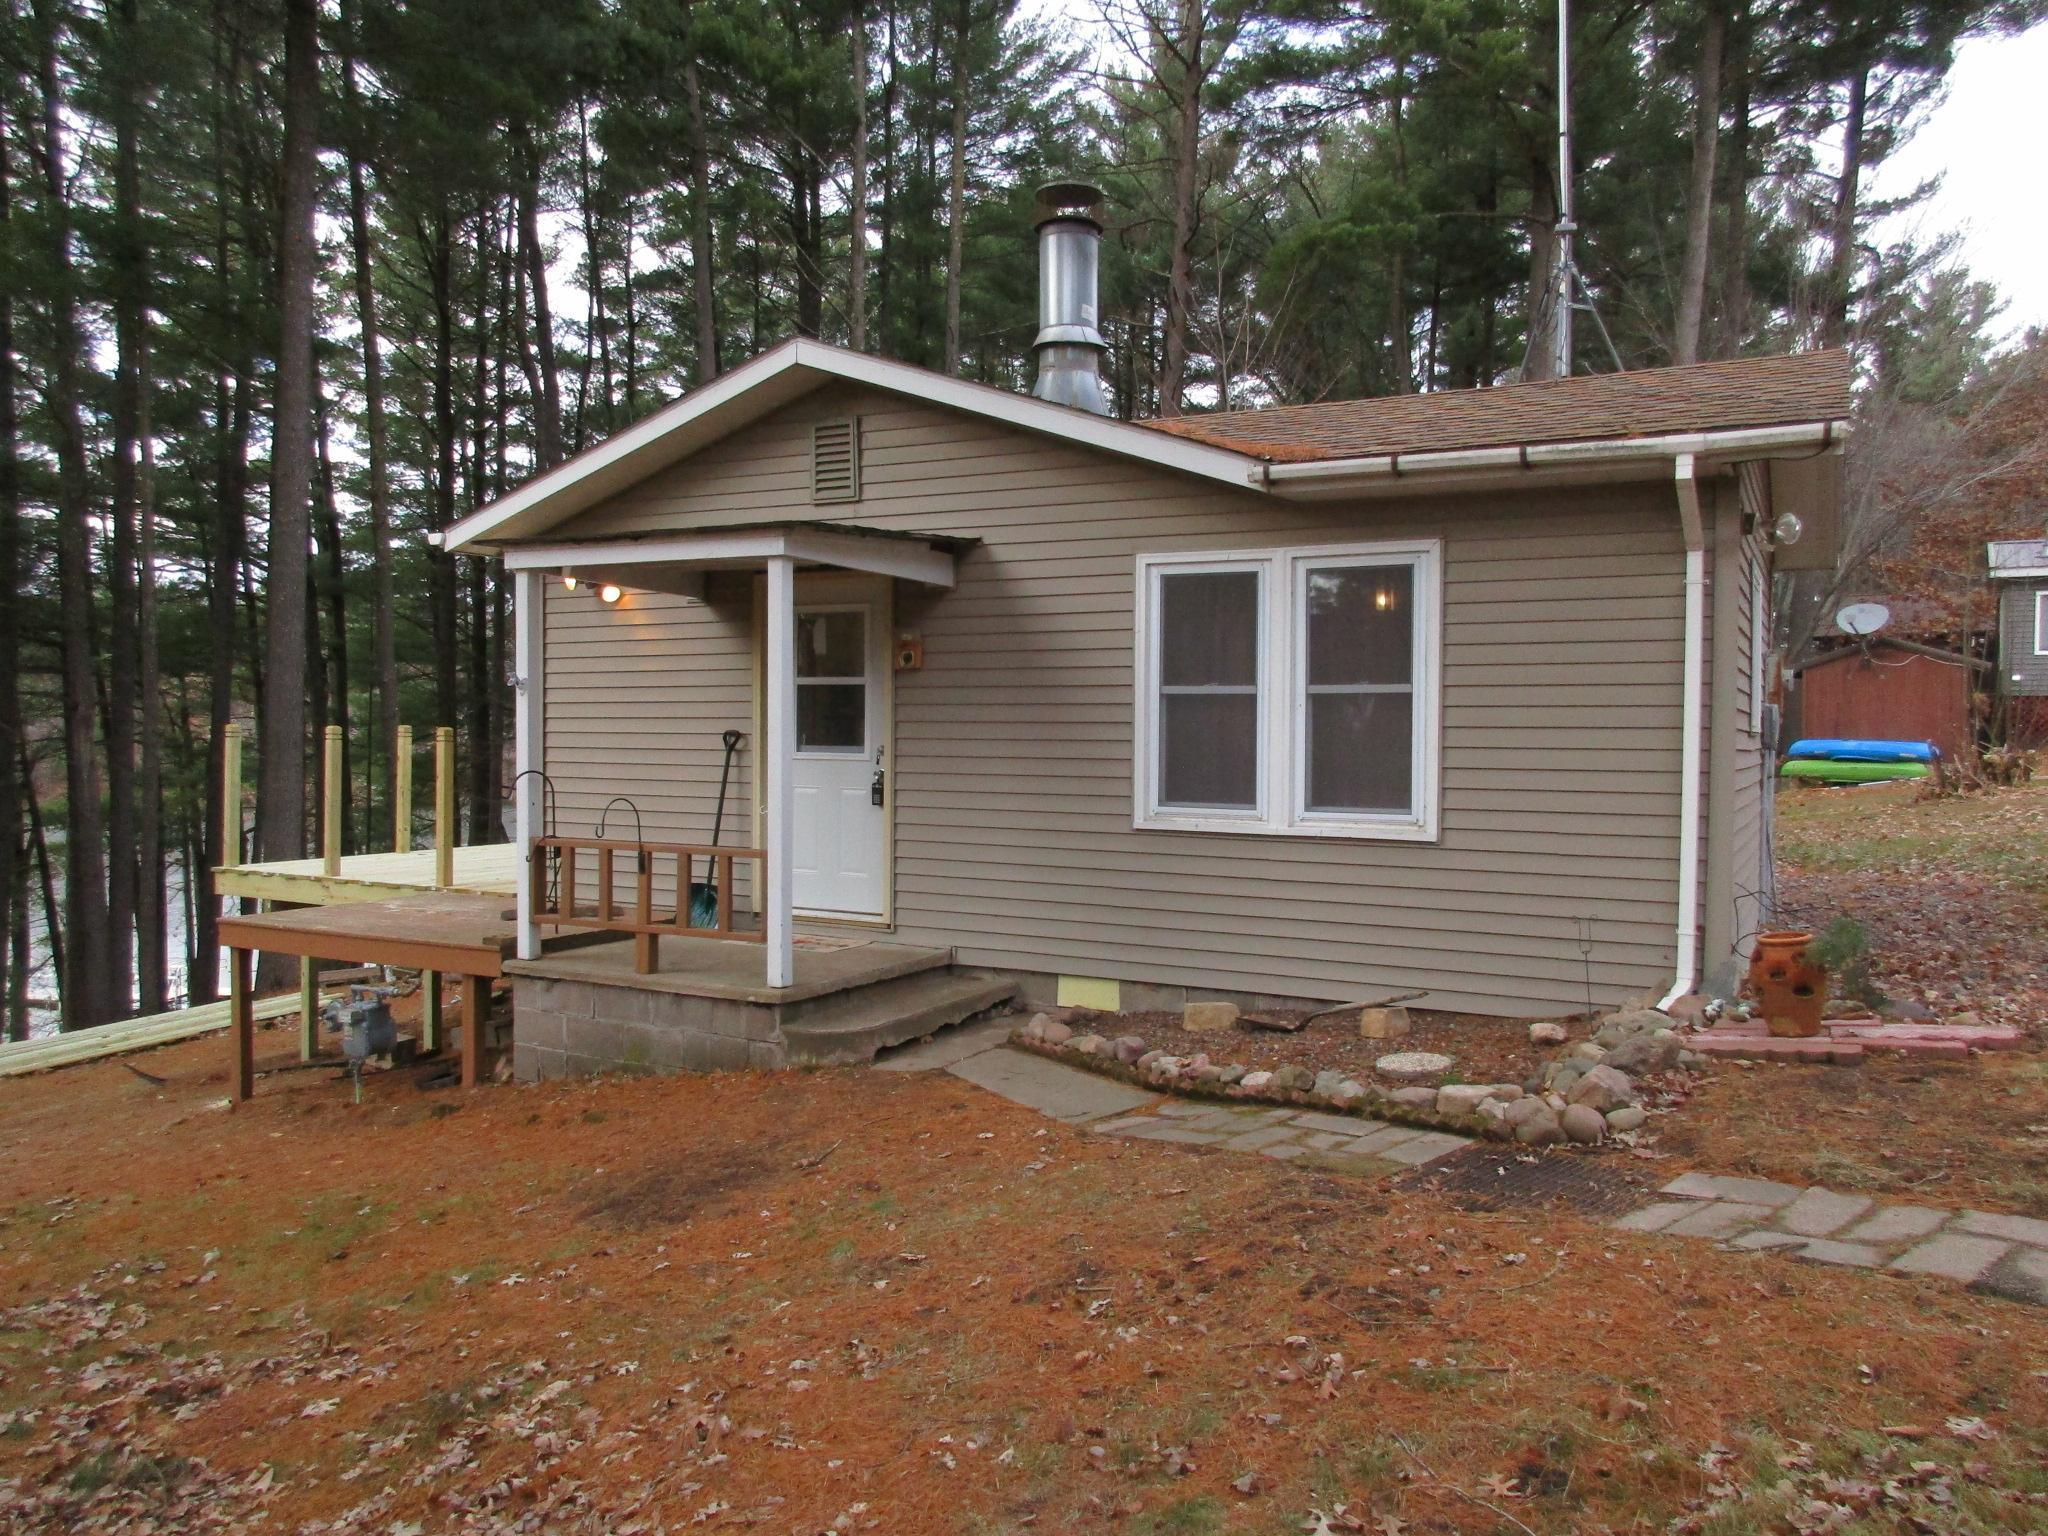 2149 13 12 1/2 Avenue Property Photo - Stanley Twp, WI real estate listing